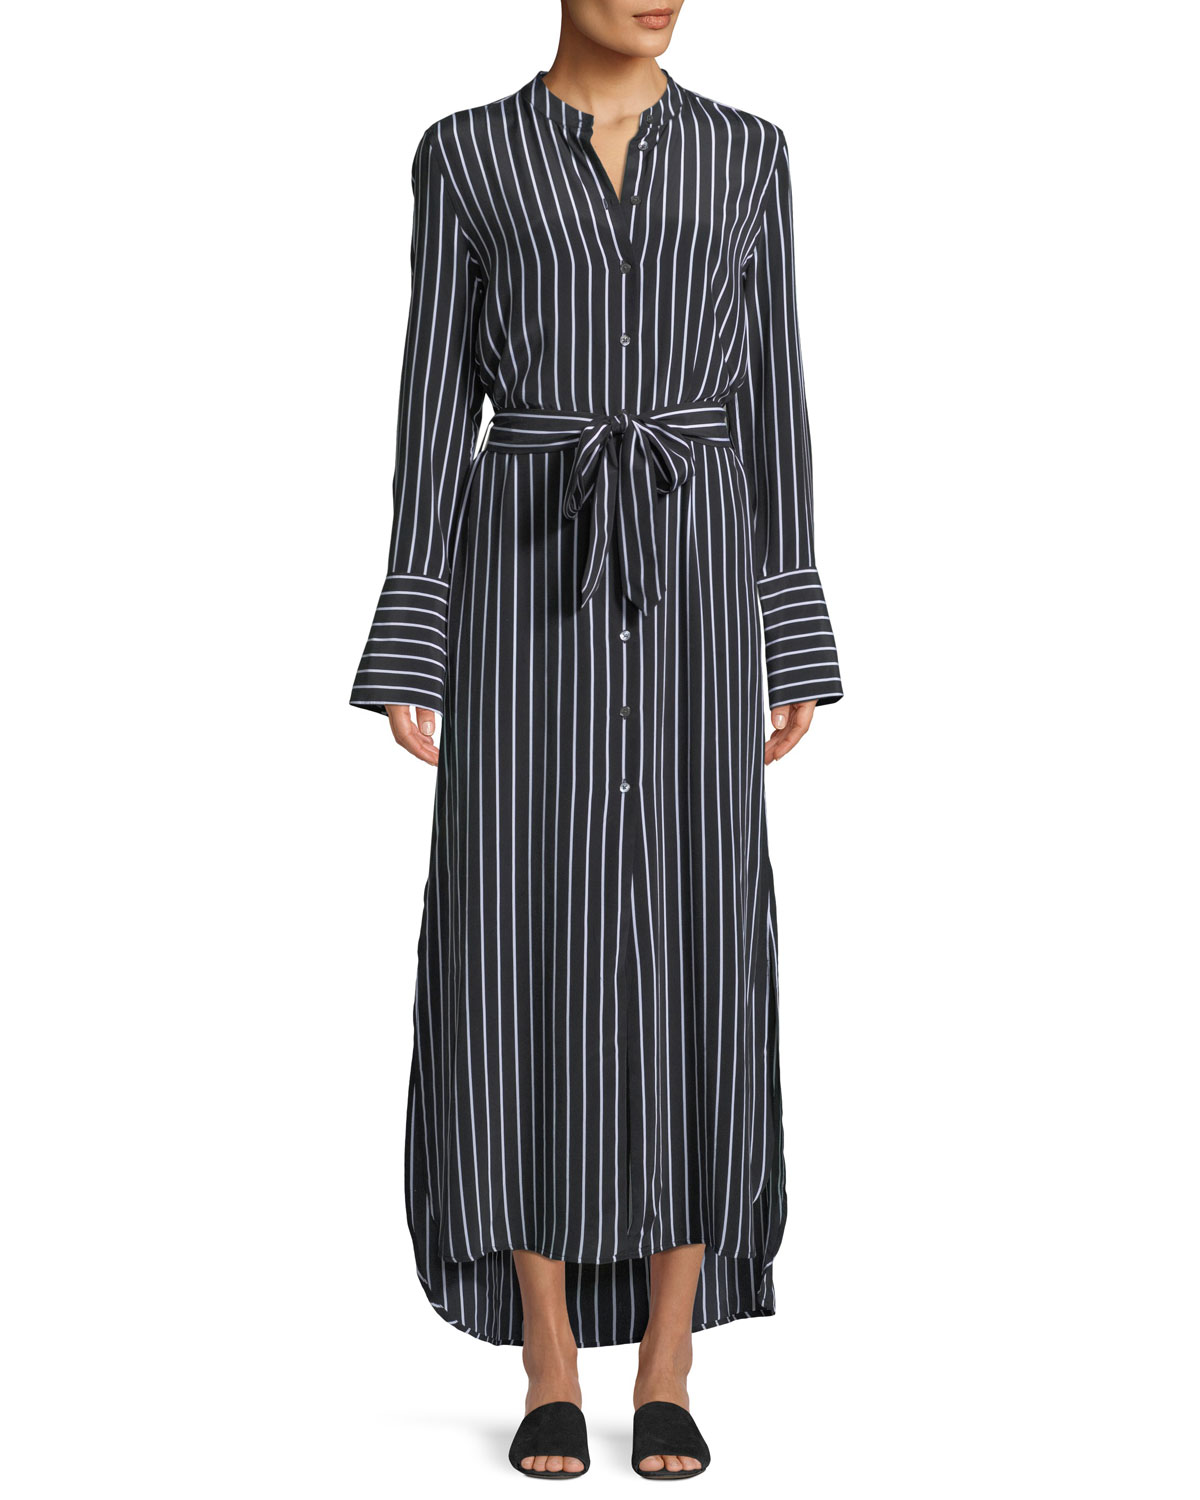 Connell Excellence Striped Silk Button-Front Maxi Dress in Black